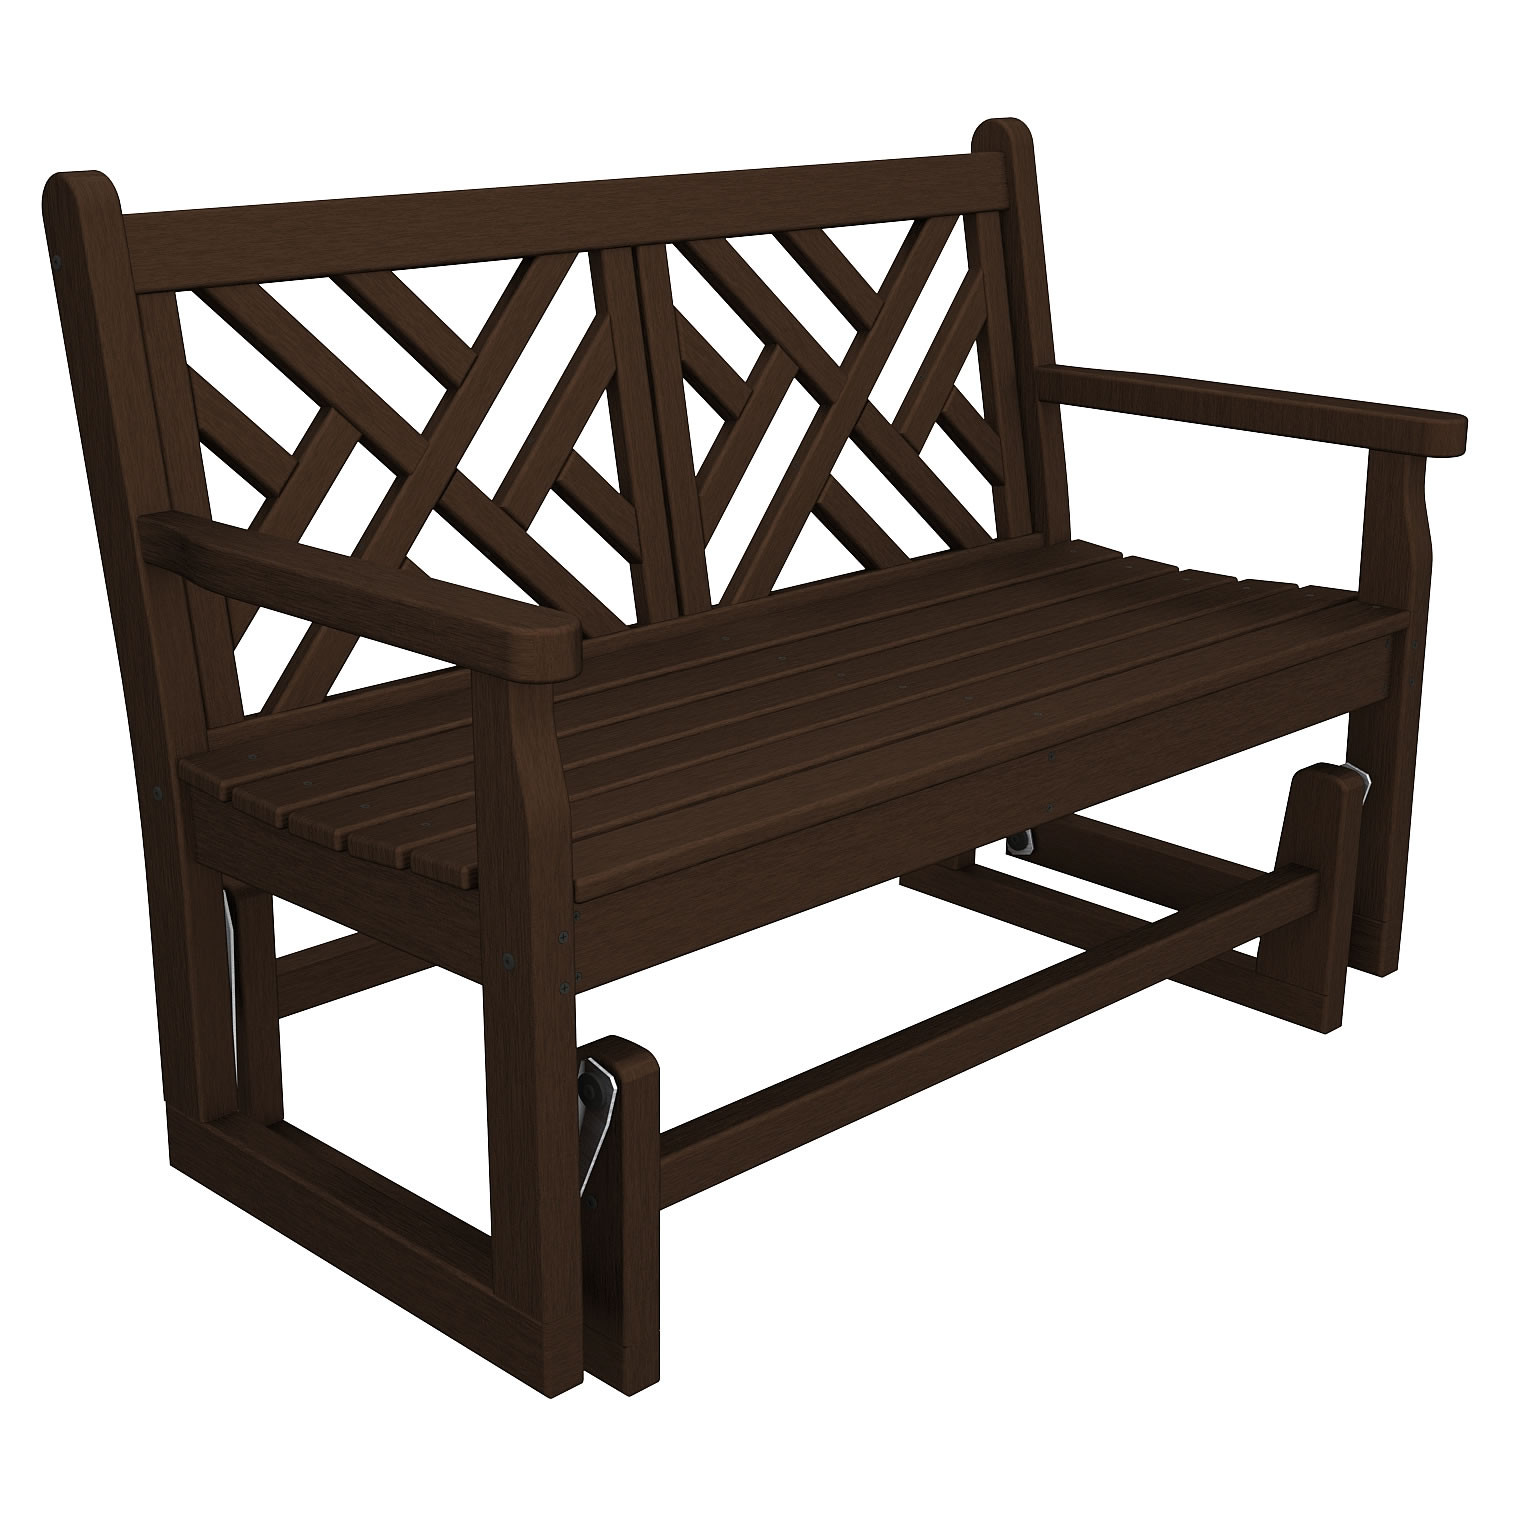 Polywood Chippendale 48 In Glider Bench Chippendale Collection Polywood Outdoor Furniture